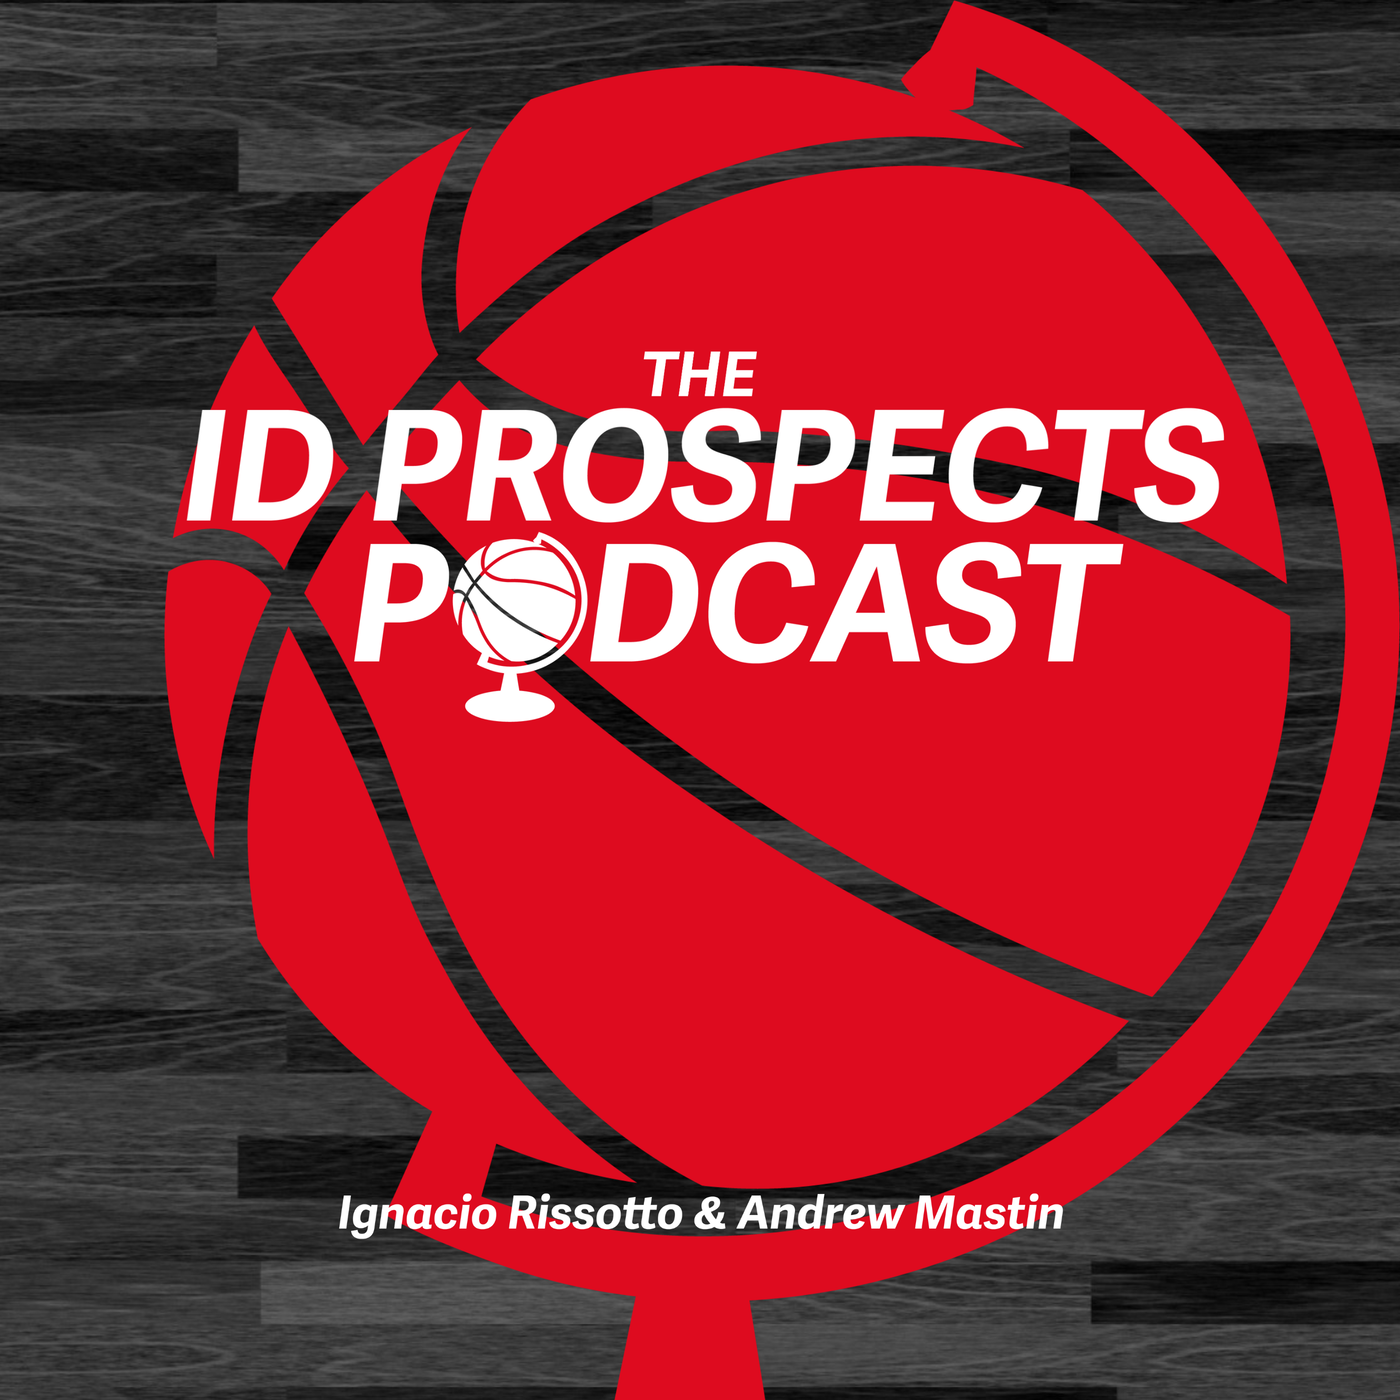 https://id-prospects.com/the-id-prospects-podcast-episode-2-2020-nba-draft-reactions/